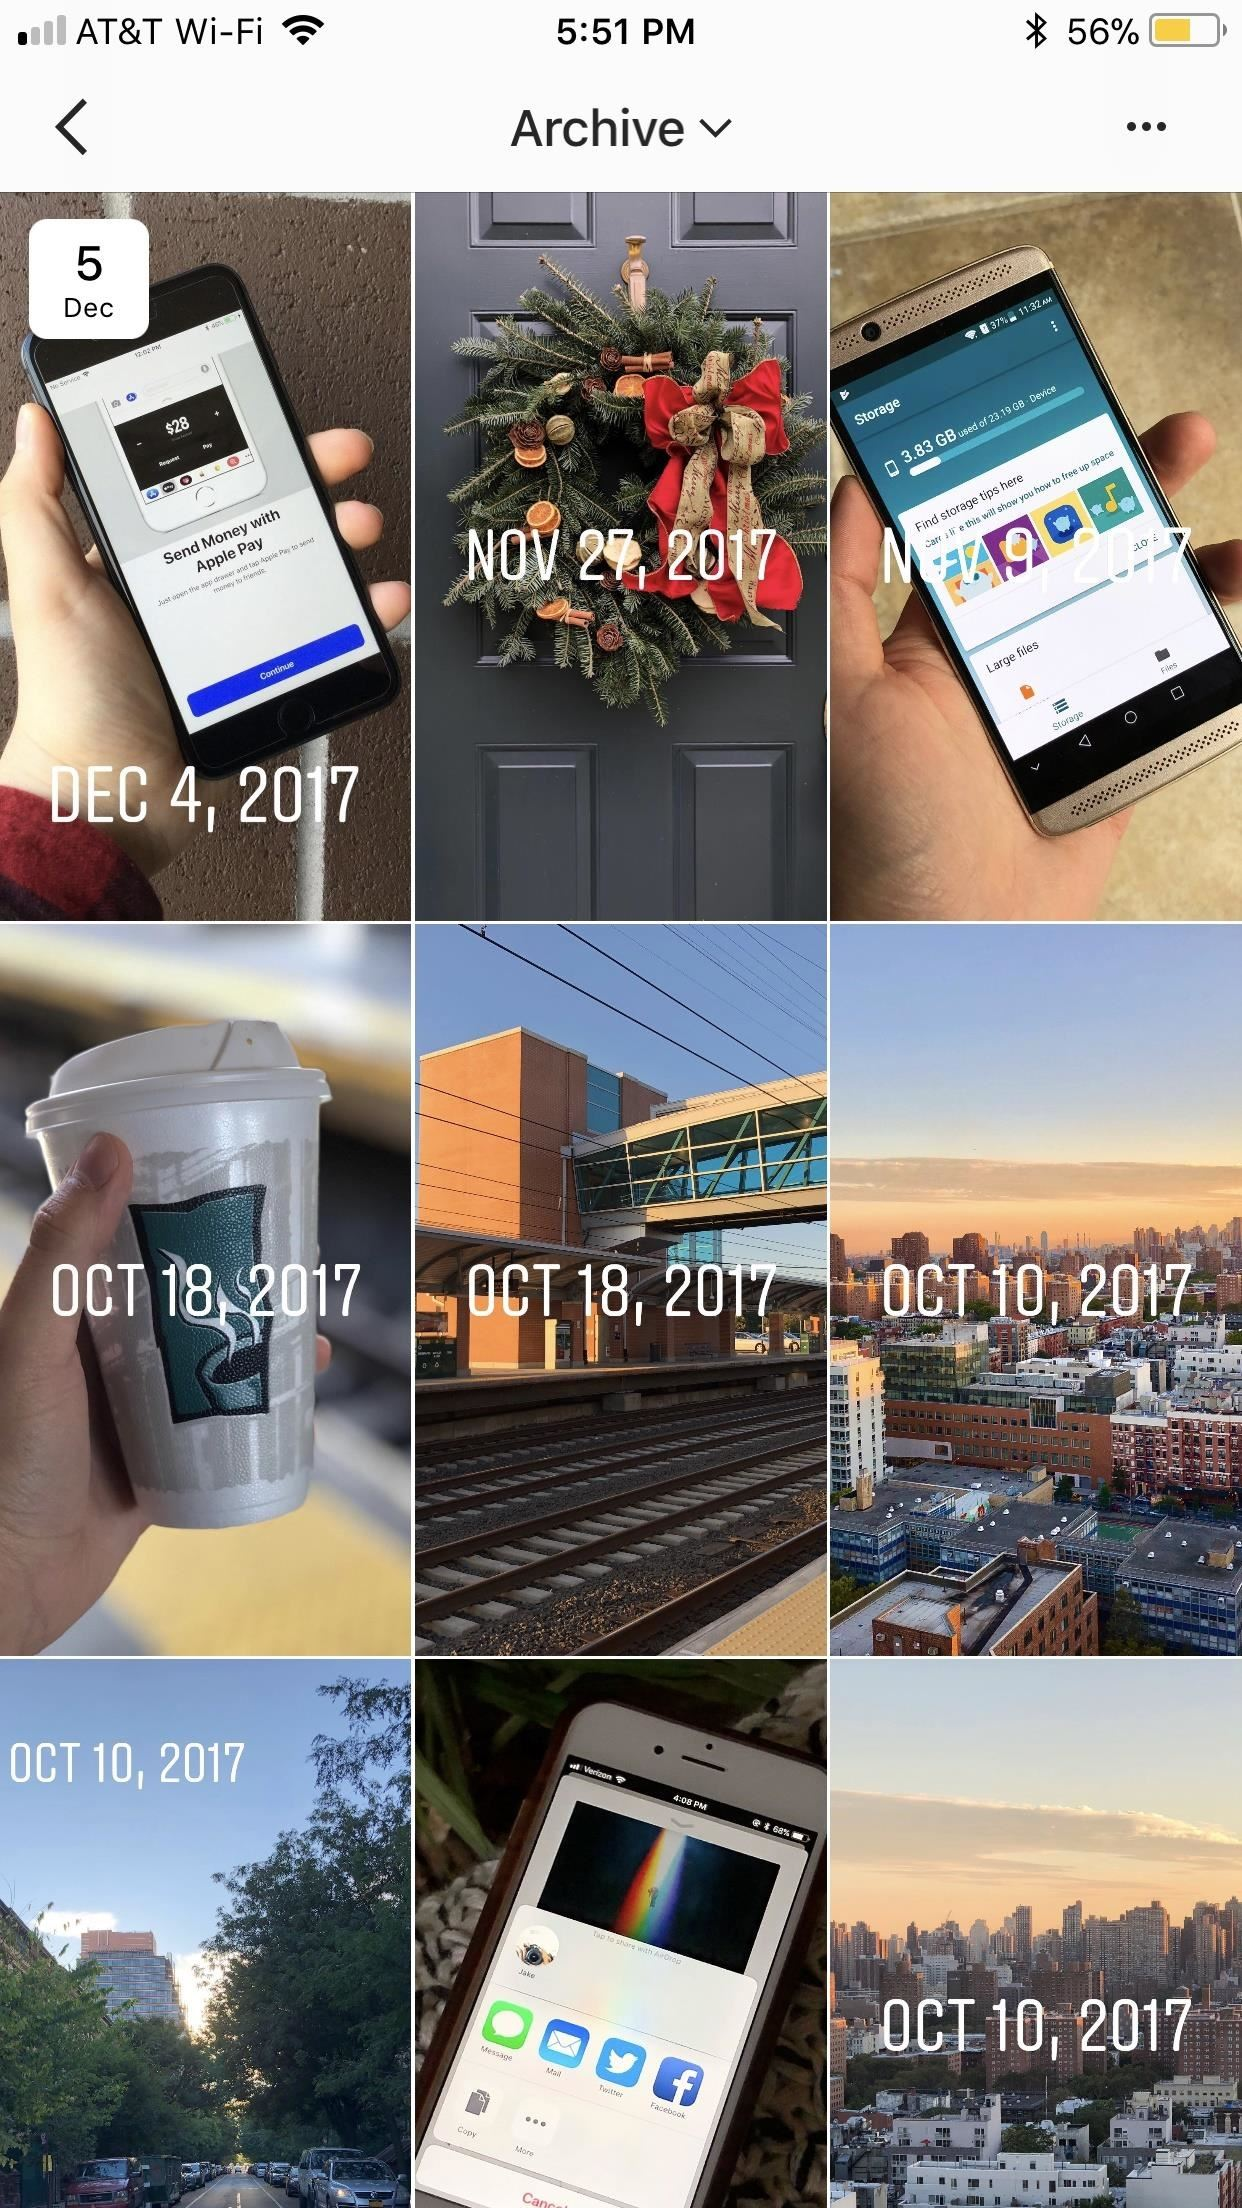 Instagram 101: How to Archive All Your Stories Automatically